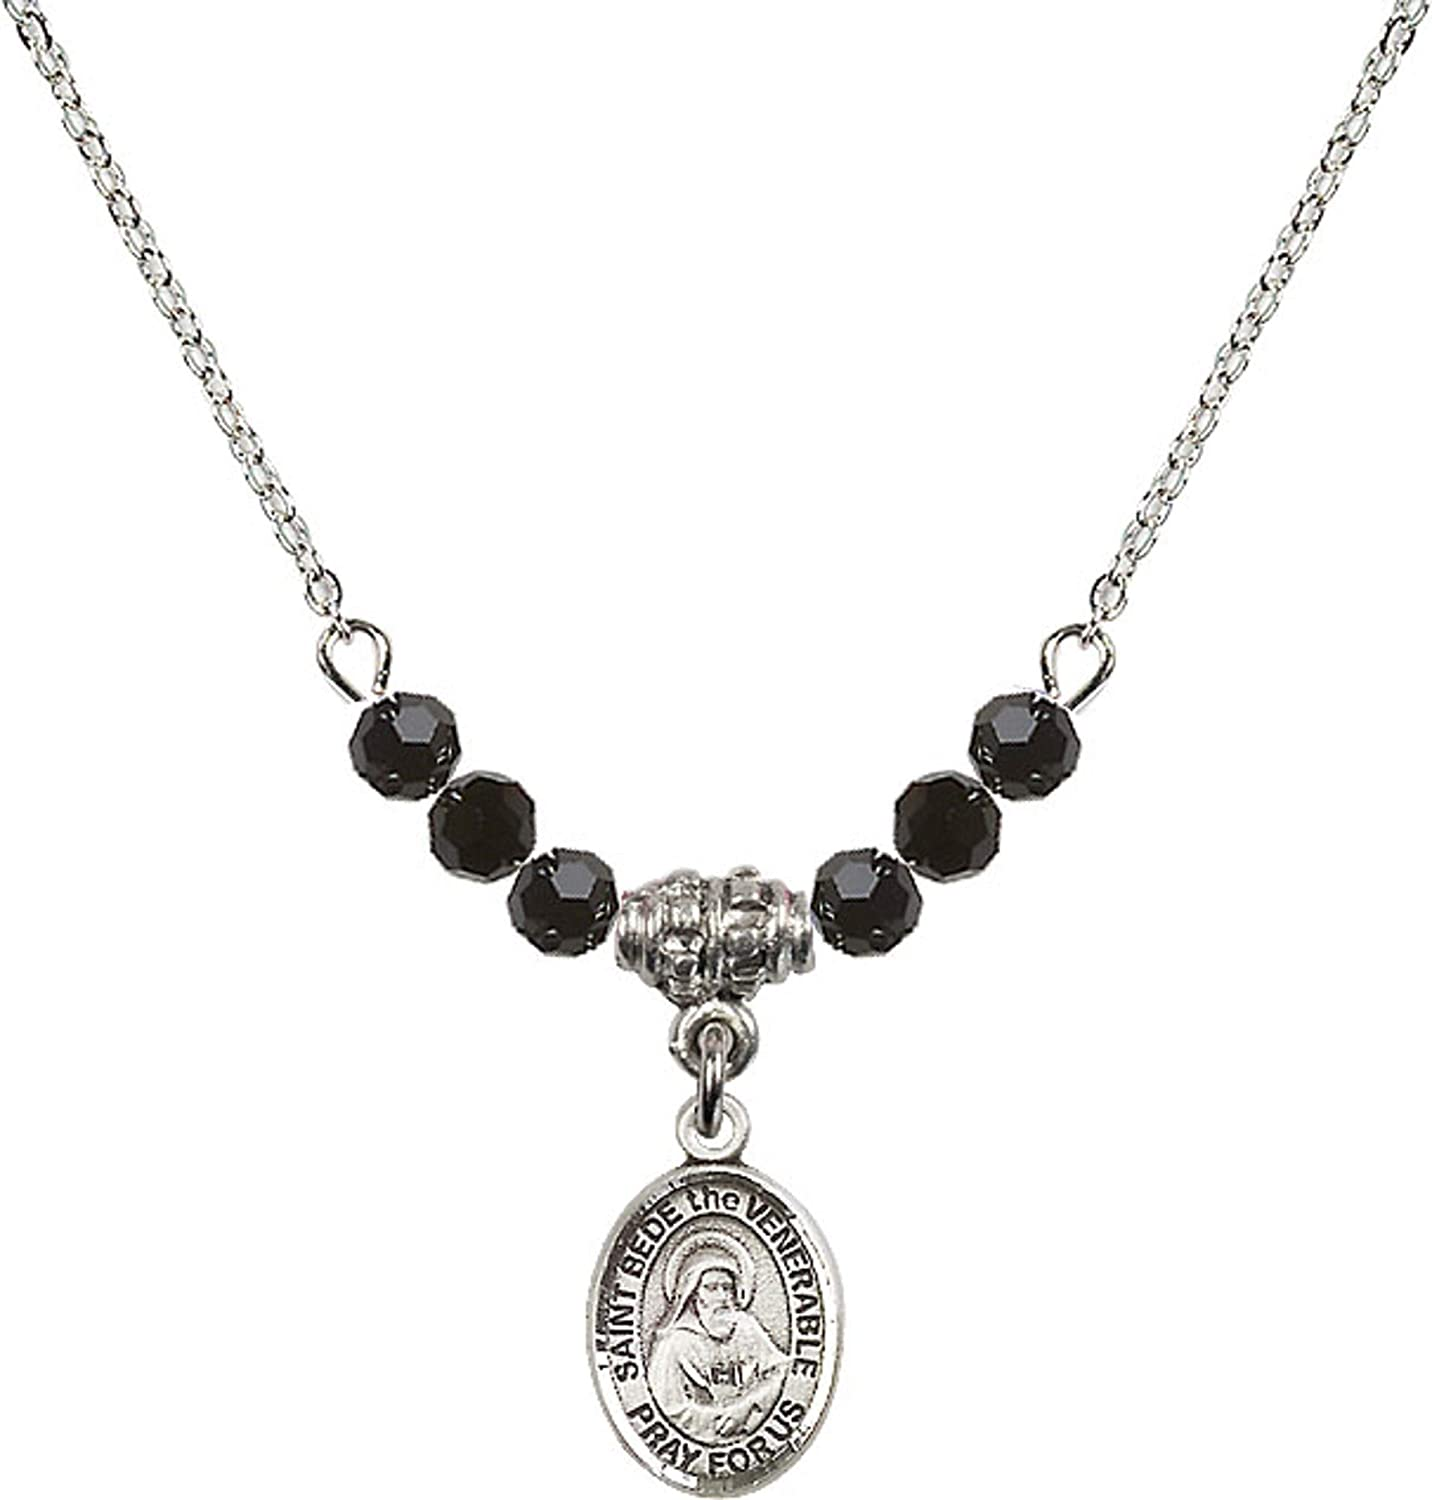 Bonyak Jewelry 18 Inch Rhodium Plated Necklace w// 4mm Jet Birth Month Stone Beads and Saint Bede The Venerable Charm